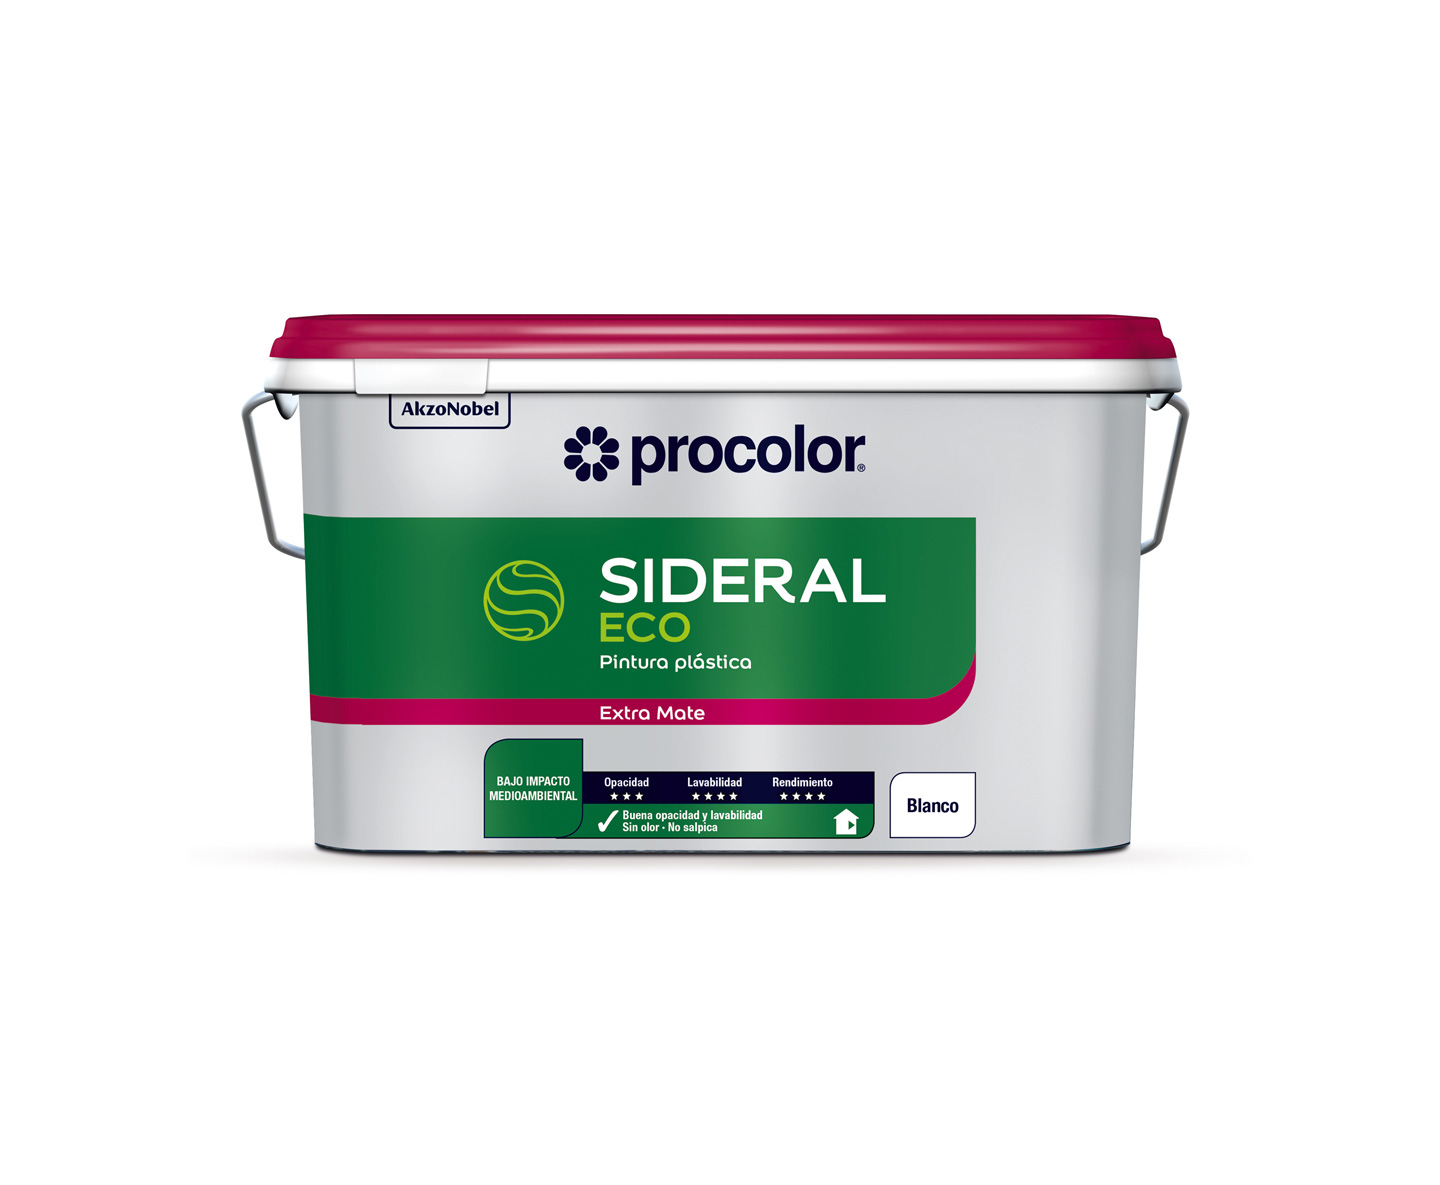 Sideral Eco Image